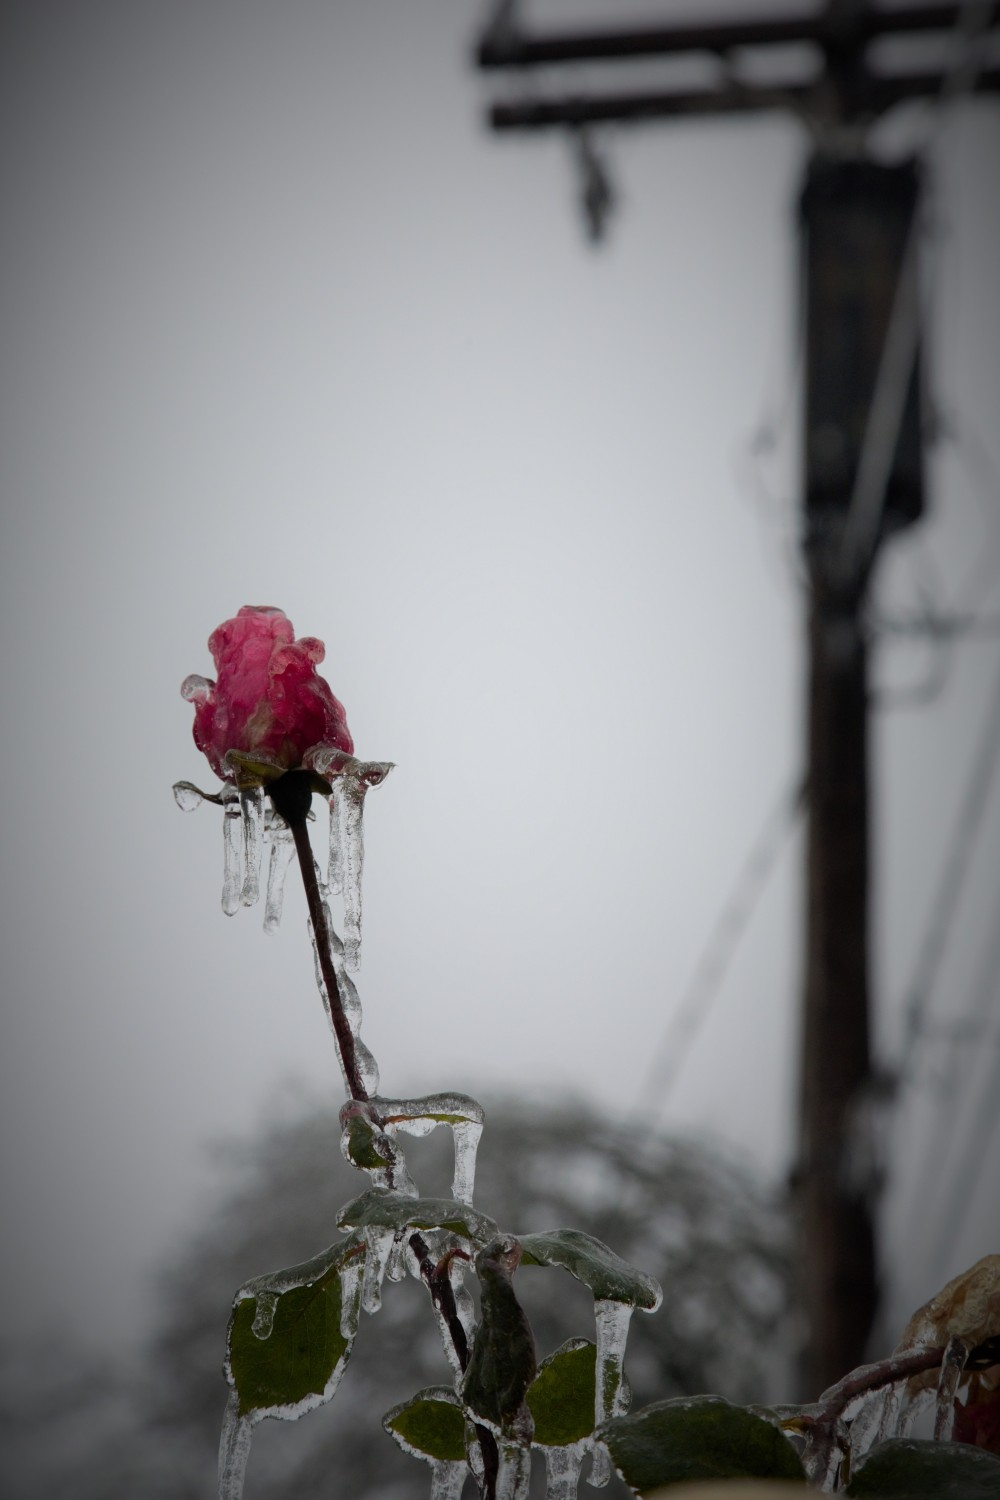 rose-and-pole-frozen